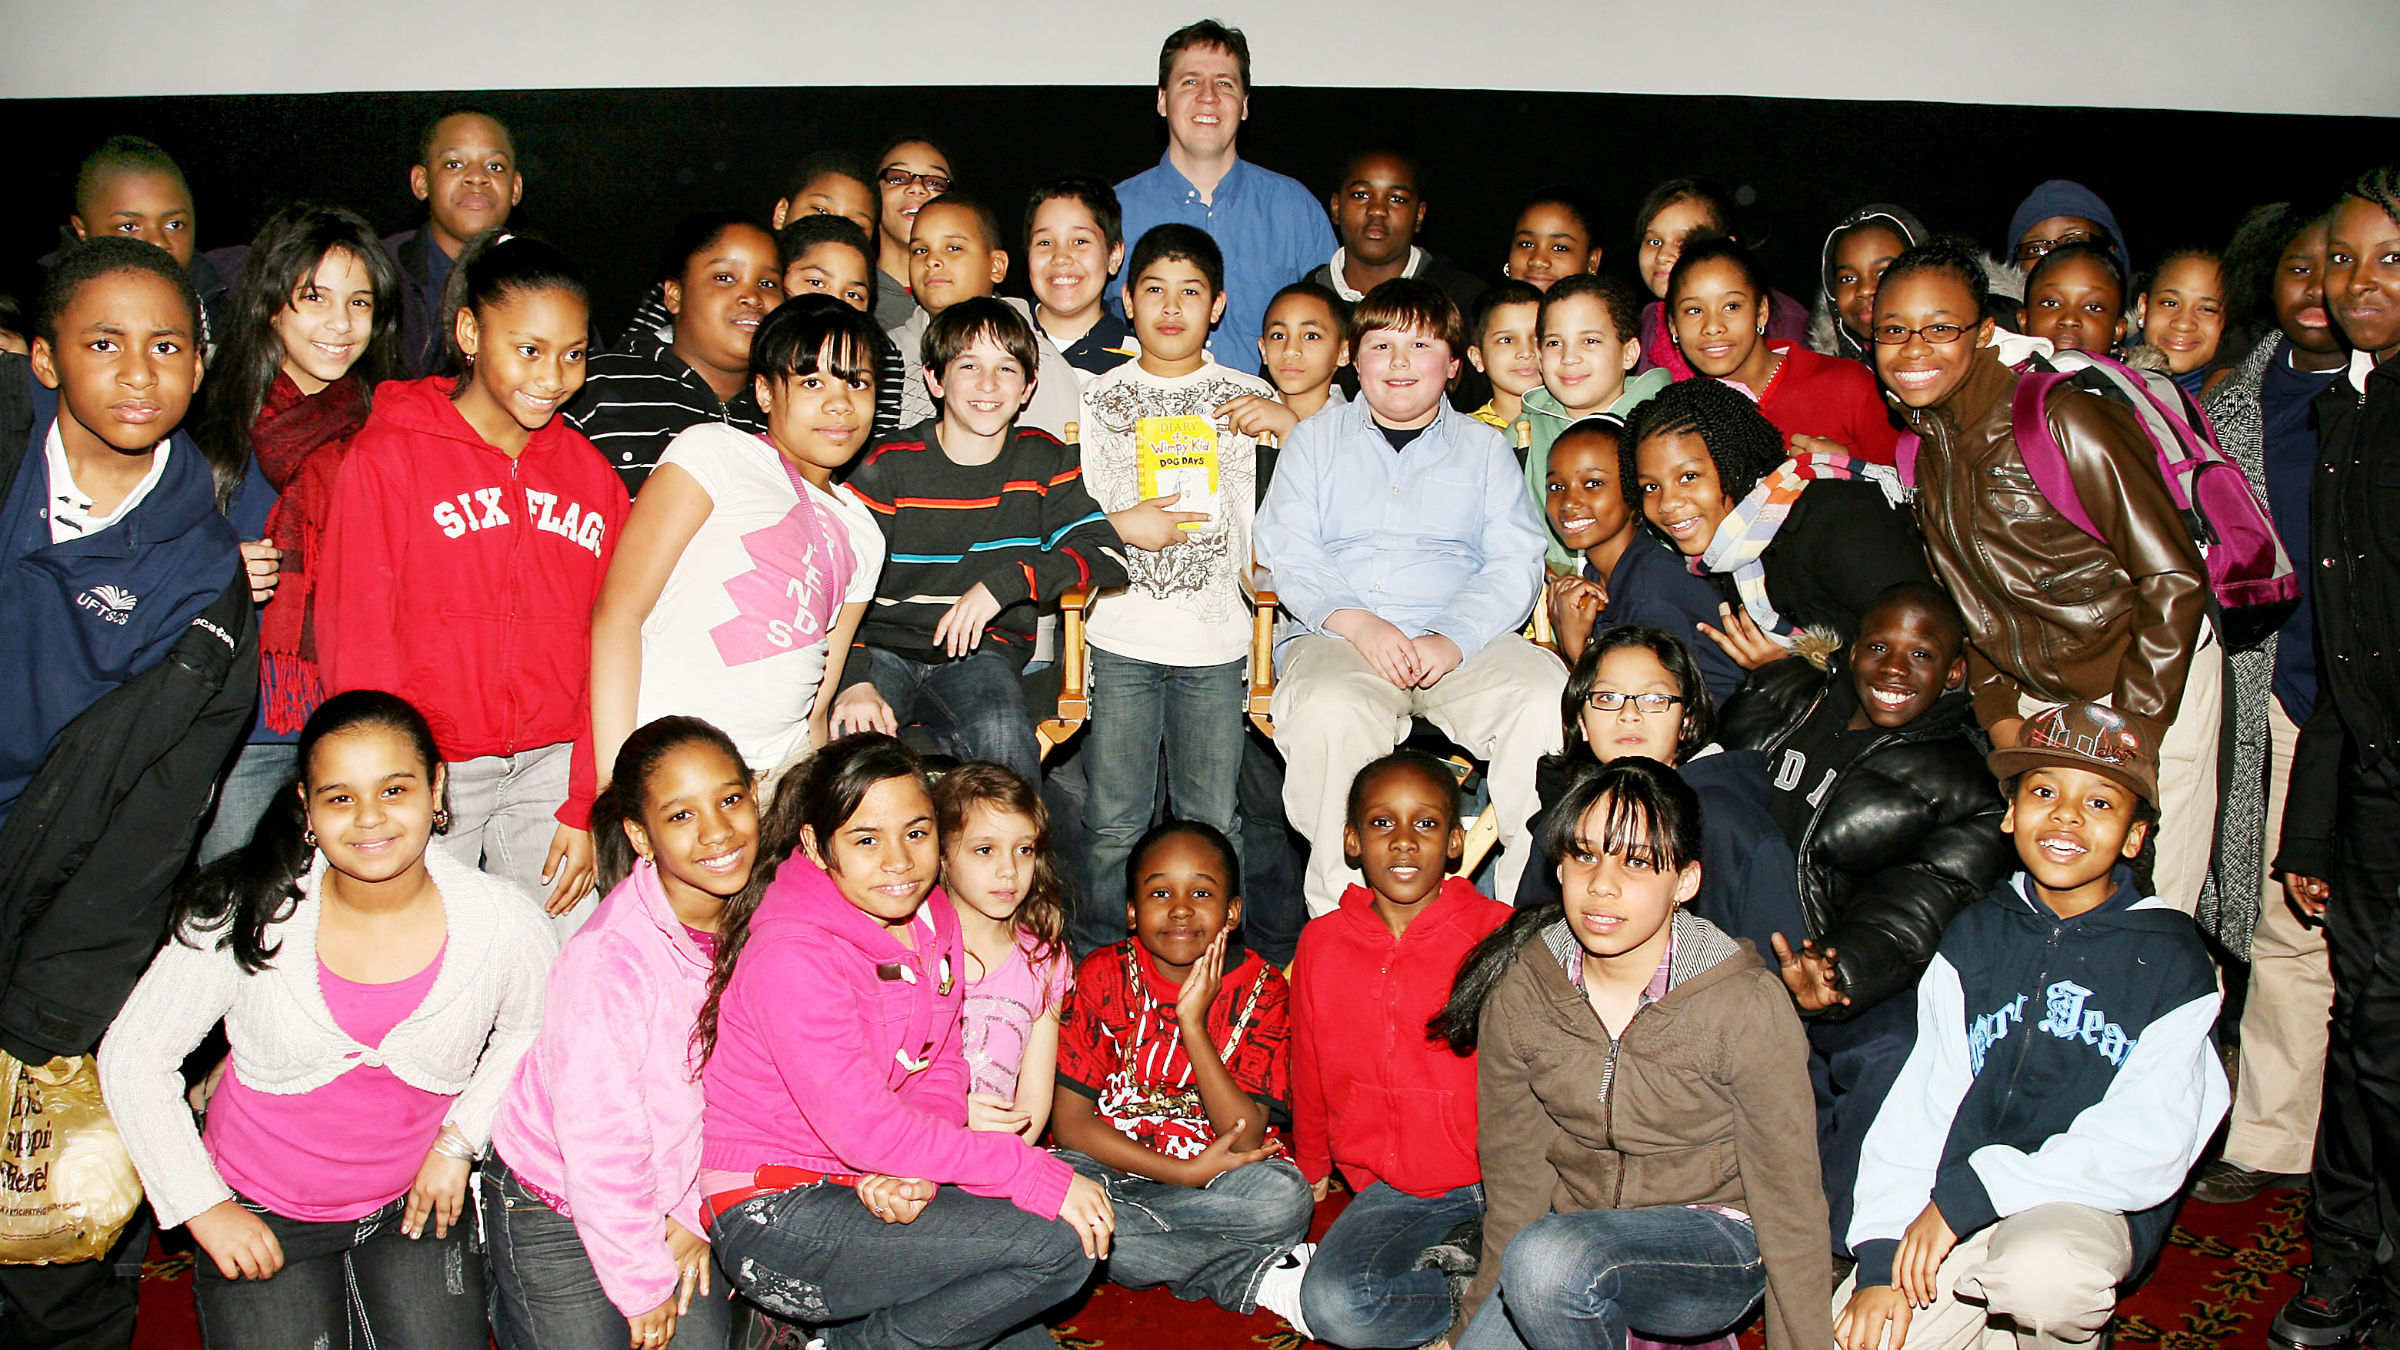 """In this photo provided by StarPix, Author Jeff Kinney and the cast of 20th Century Fox's """"Diary of a Wimpy Kid"""" attend a special screening of the film in New York, Thursday, March 4, 2010."""